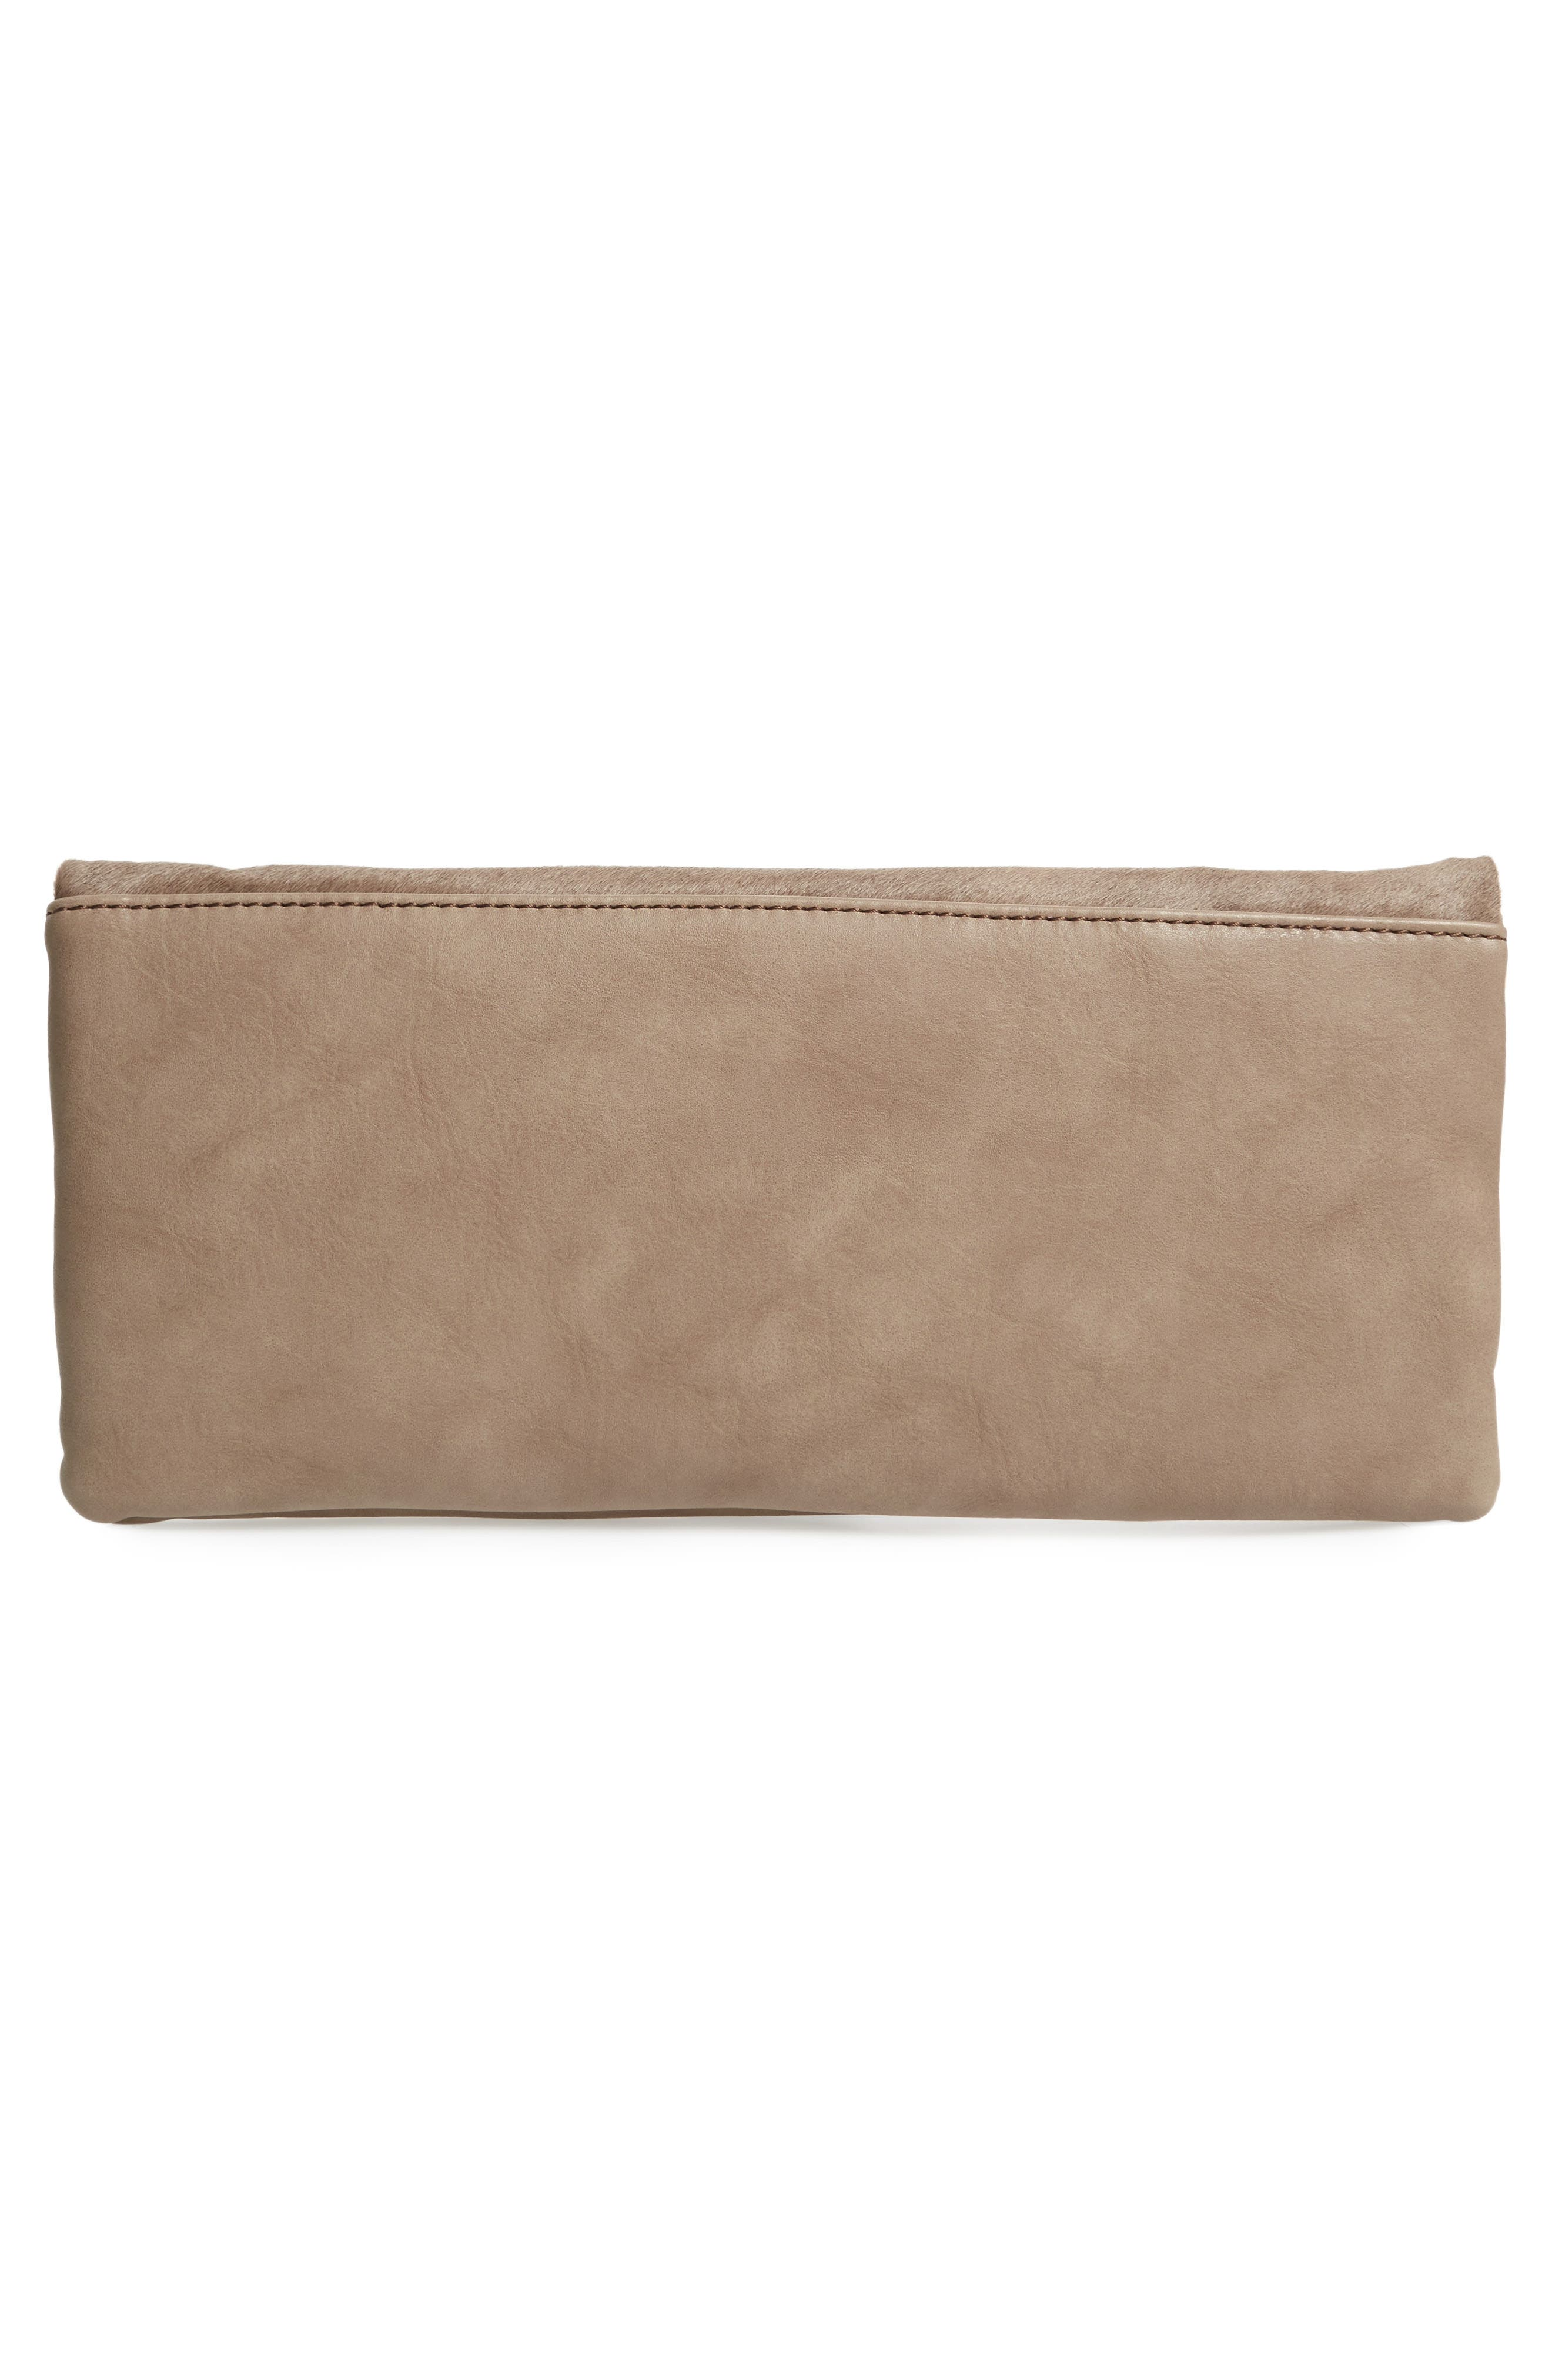 Tammi Genuine Calf Hair & Faux Leather Foldover Clutch,                             Alternate thumbnail 2, color,                             Taupe